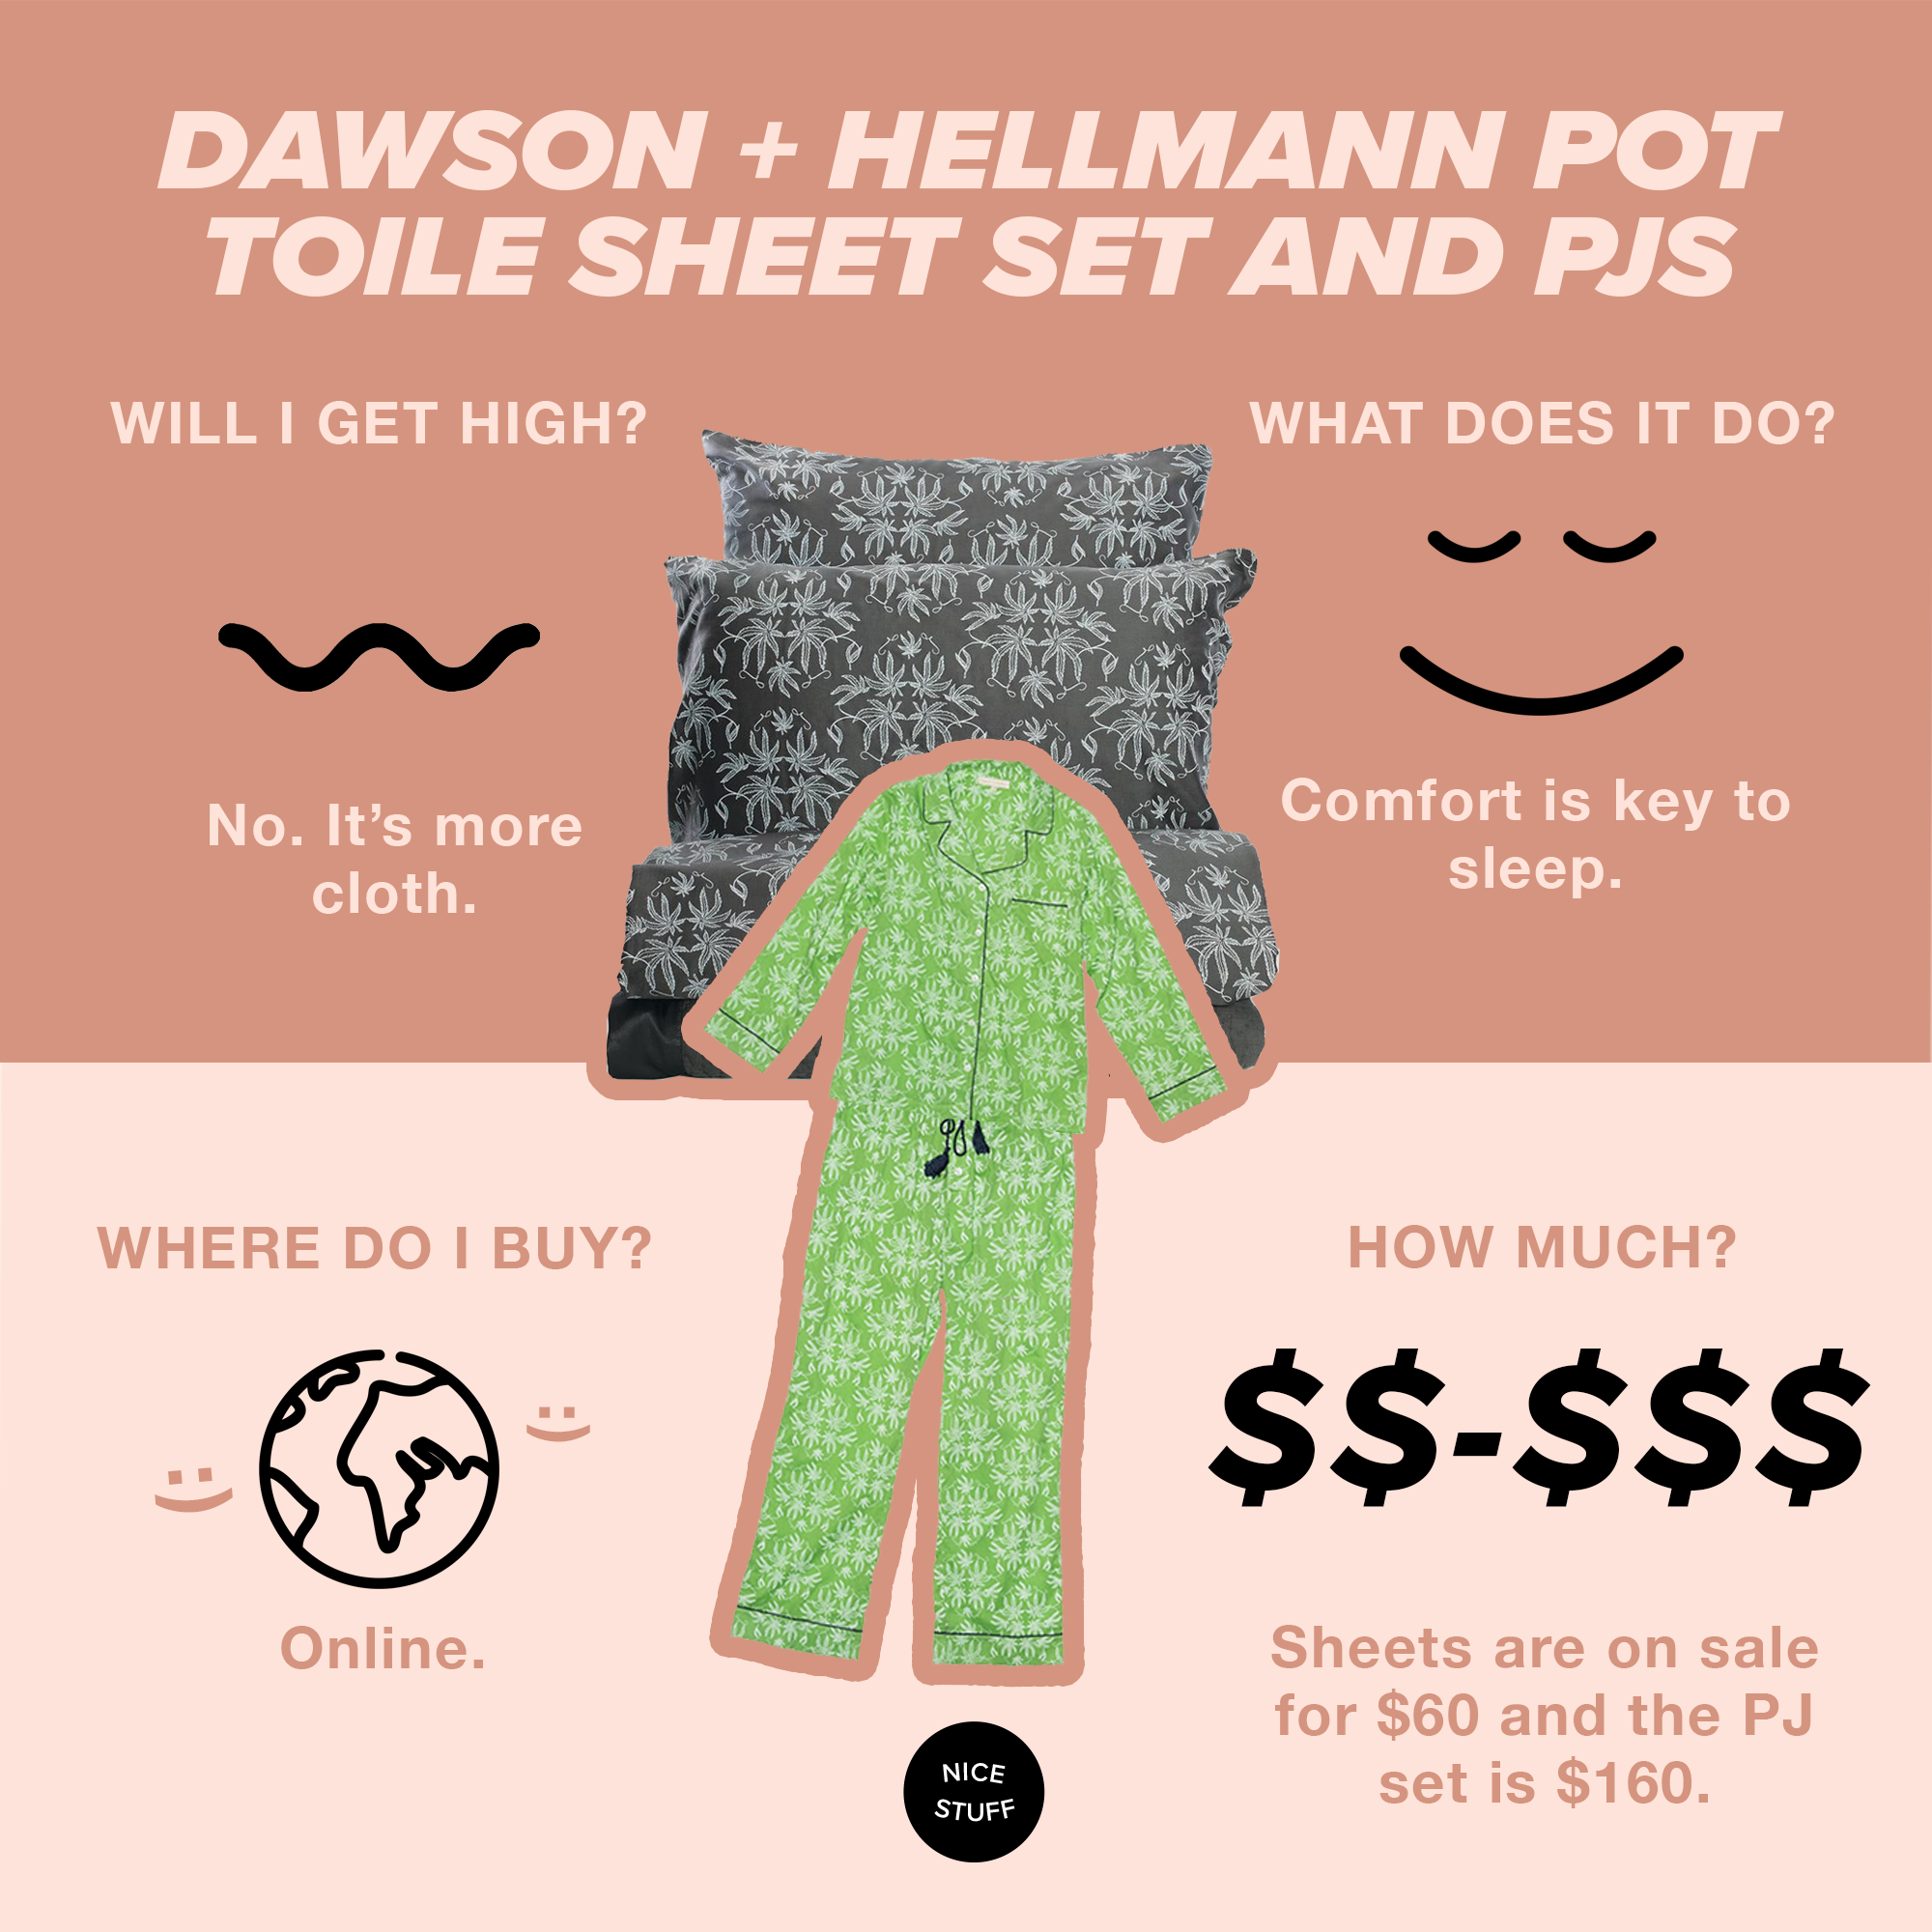 Dawson + Hellmann Pot Toile Sheet Set and PJs - Promise we're getting to the actual weed. This PJ and sheet set is something we've been coveting for quite some time. As nice things come to those that wait, the sheet set is only $60, double dream(y).